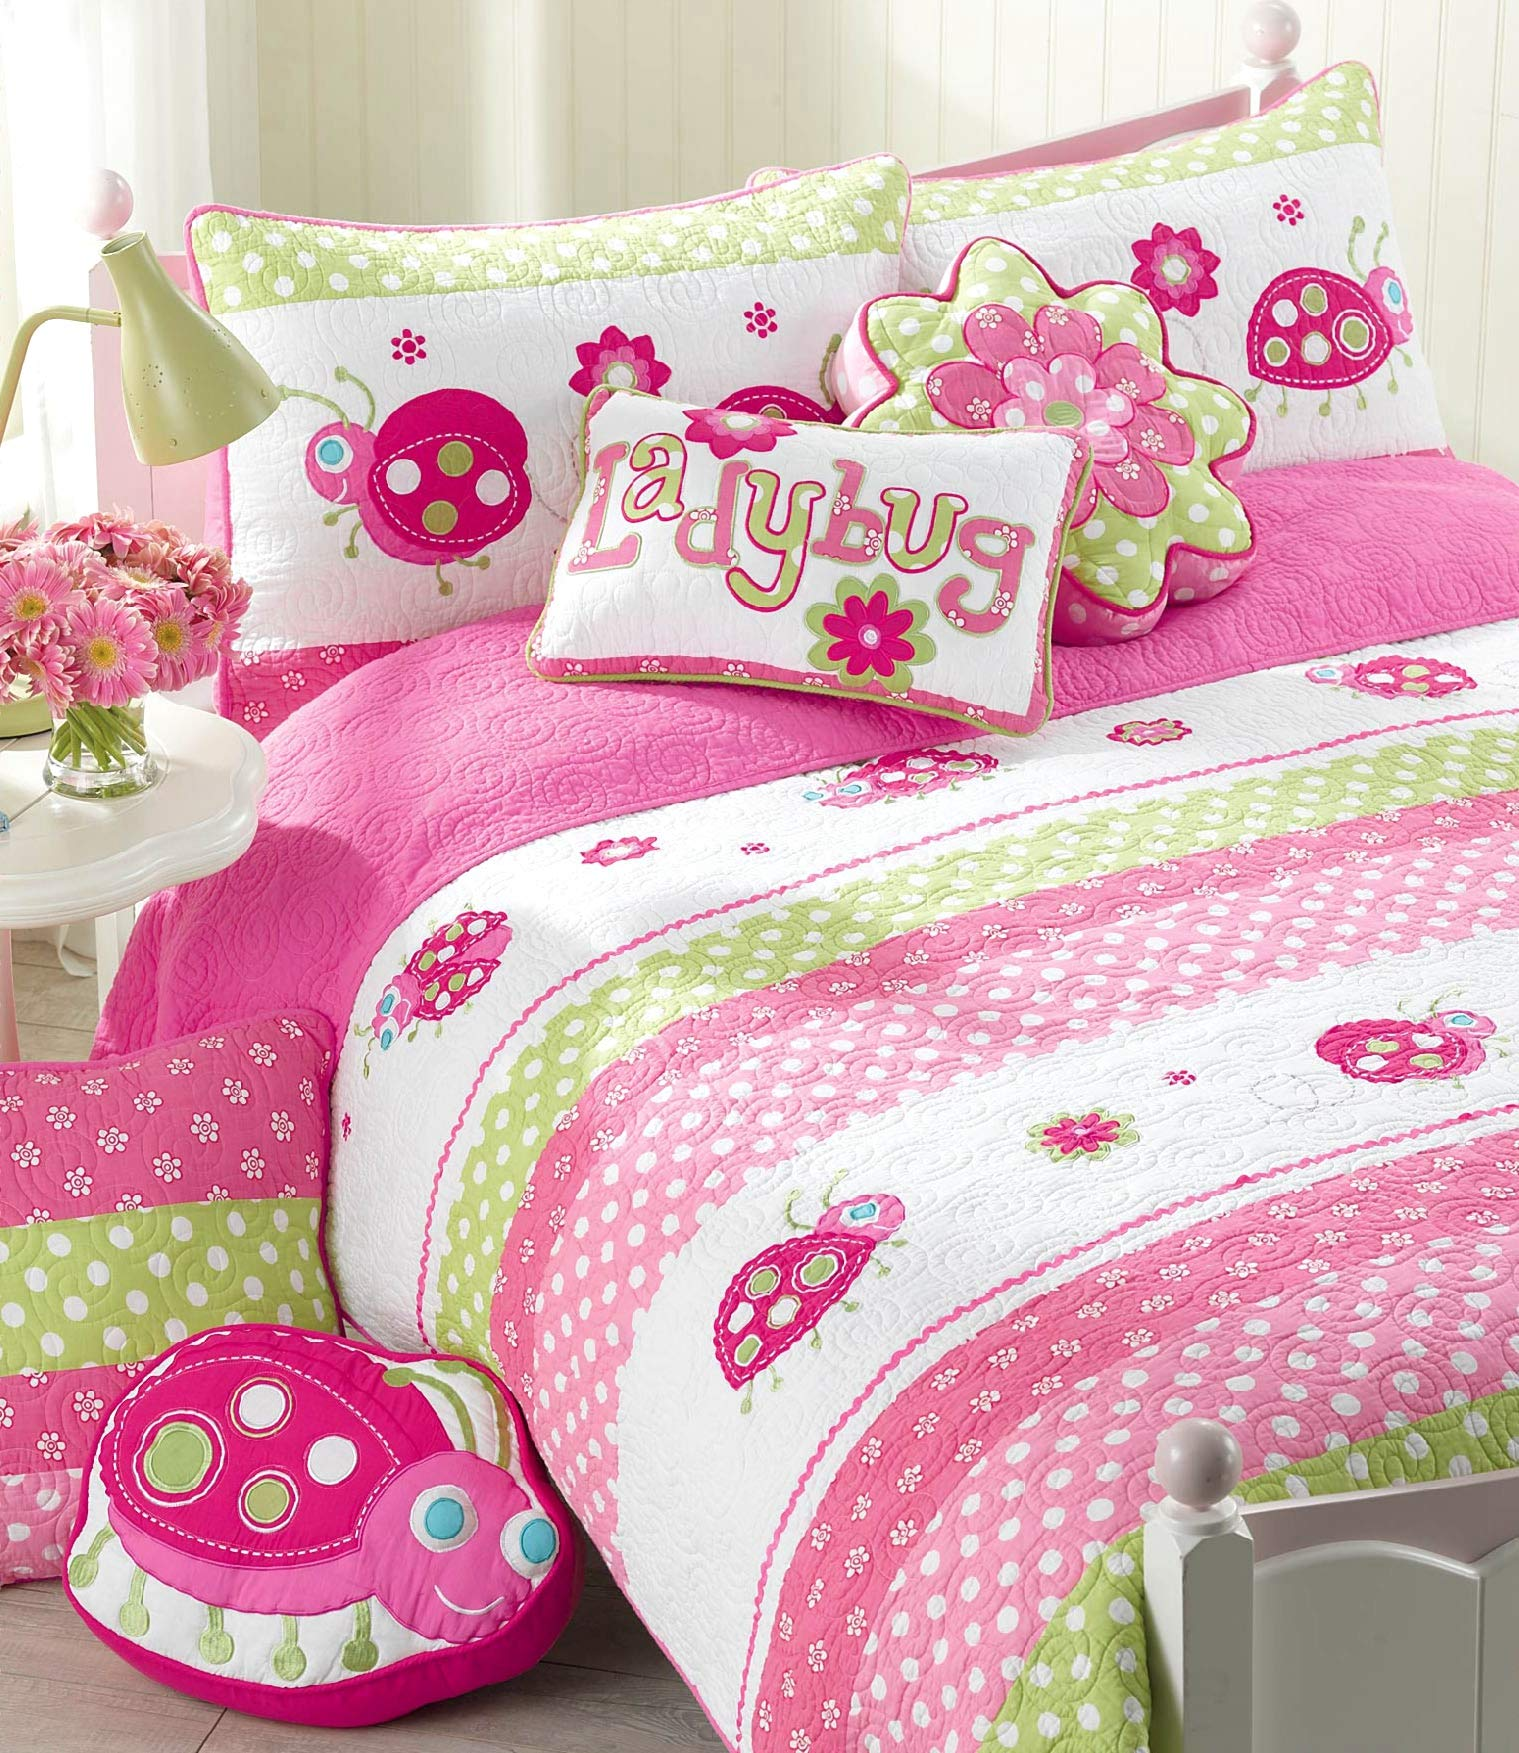 Cozy Line Home Fashions 5-Piece Pink Ladybug Quilt Bedding Set, Green Fuchsia Flower Embroidered 100% Cotton Bedspread Coverlet (Twin - 5 Piece: 1 Quilt + 1 Standard Sham + 3 Decorative Pillows)